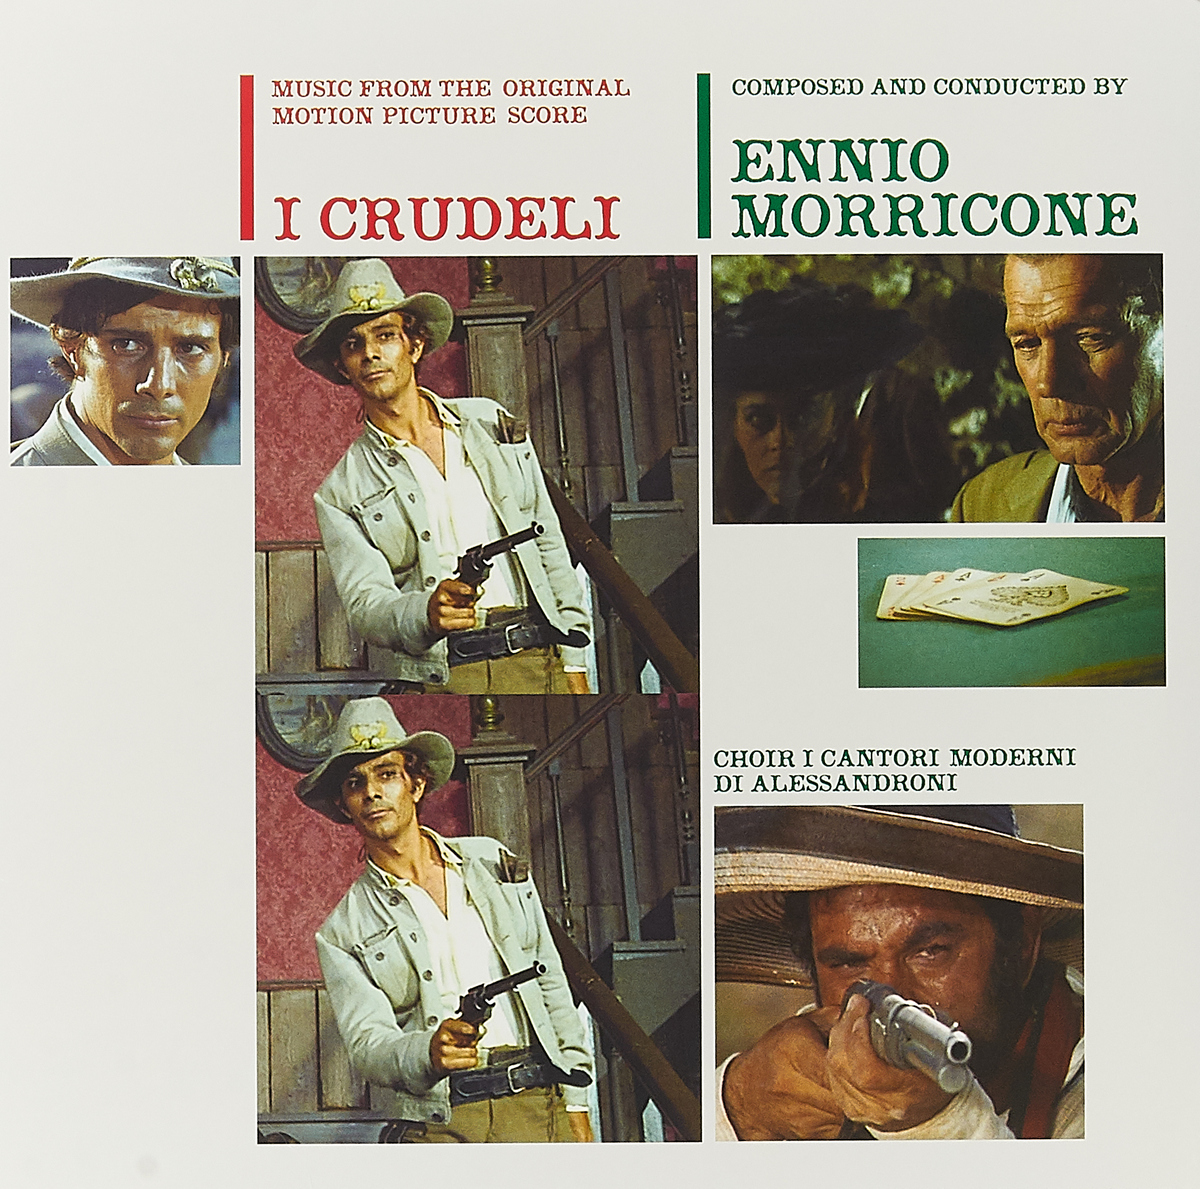 Эннио Морриконе Ennio Morricone. I Crudeli (Music From The Original Motion Picture Score) (LP) эннио морриконе ennio morricone morricone 60 years of music